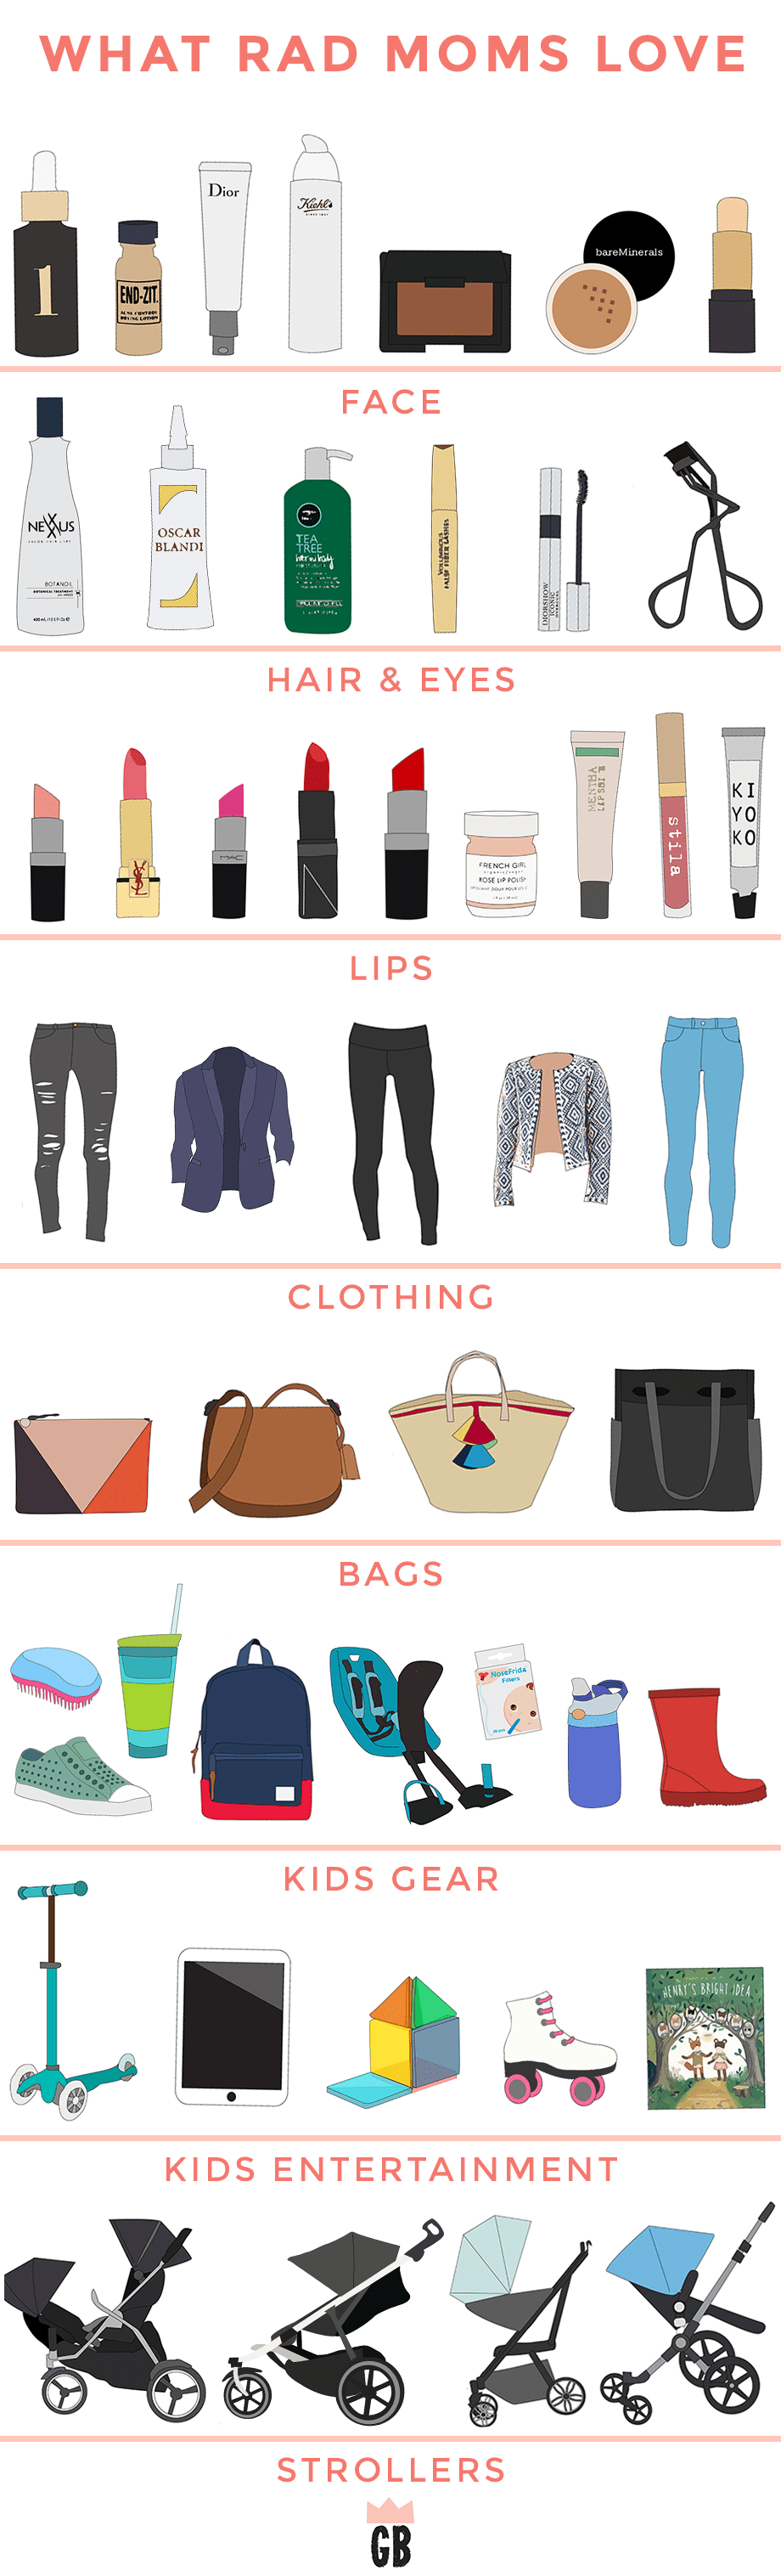 This post features Rad Mom must haves including beauty, fashion and more.